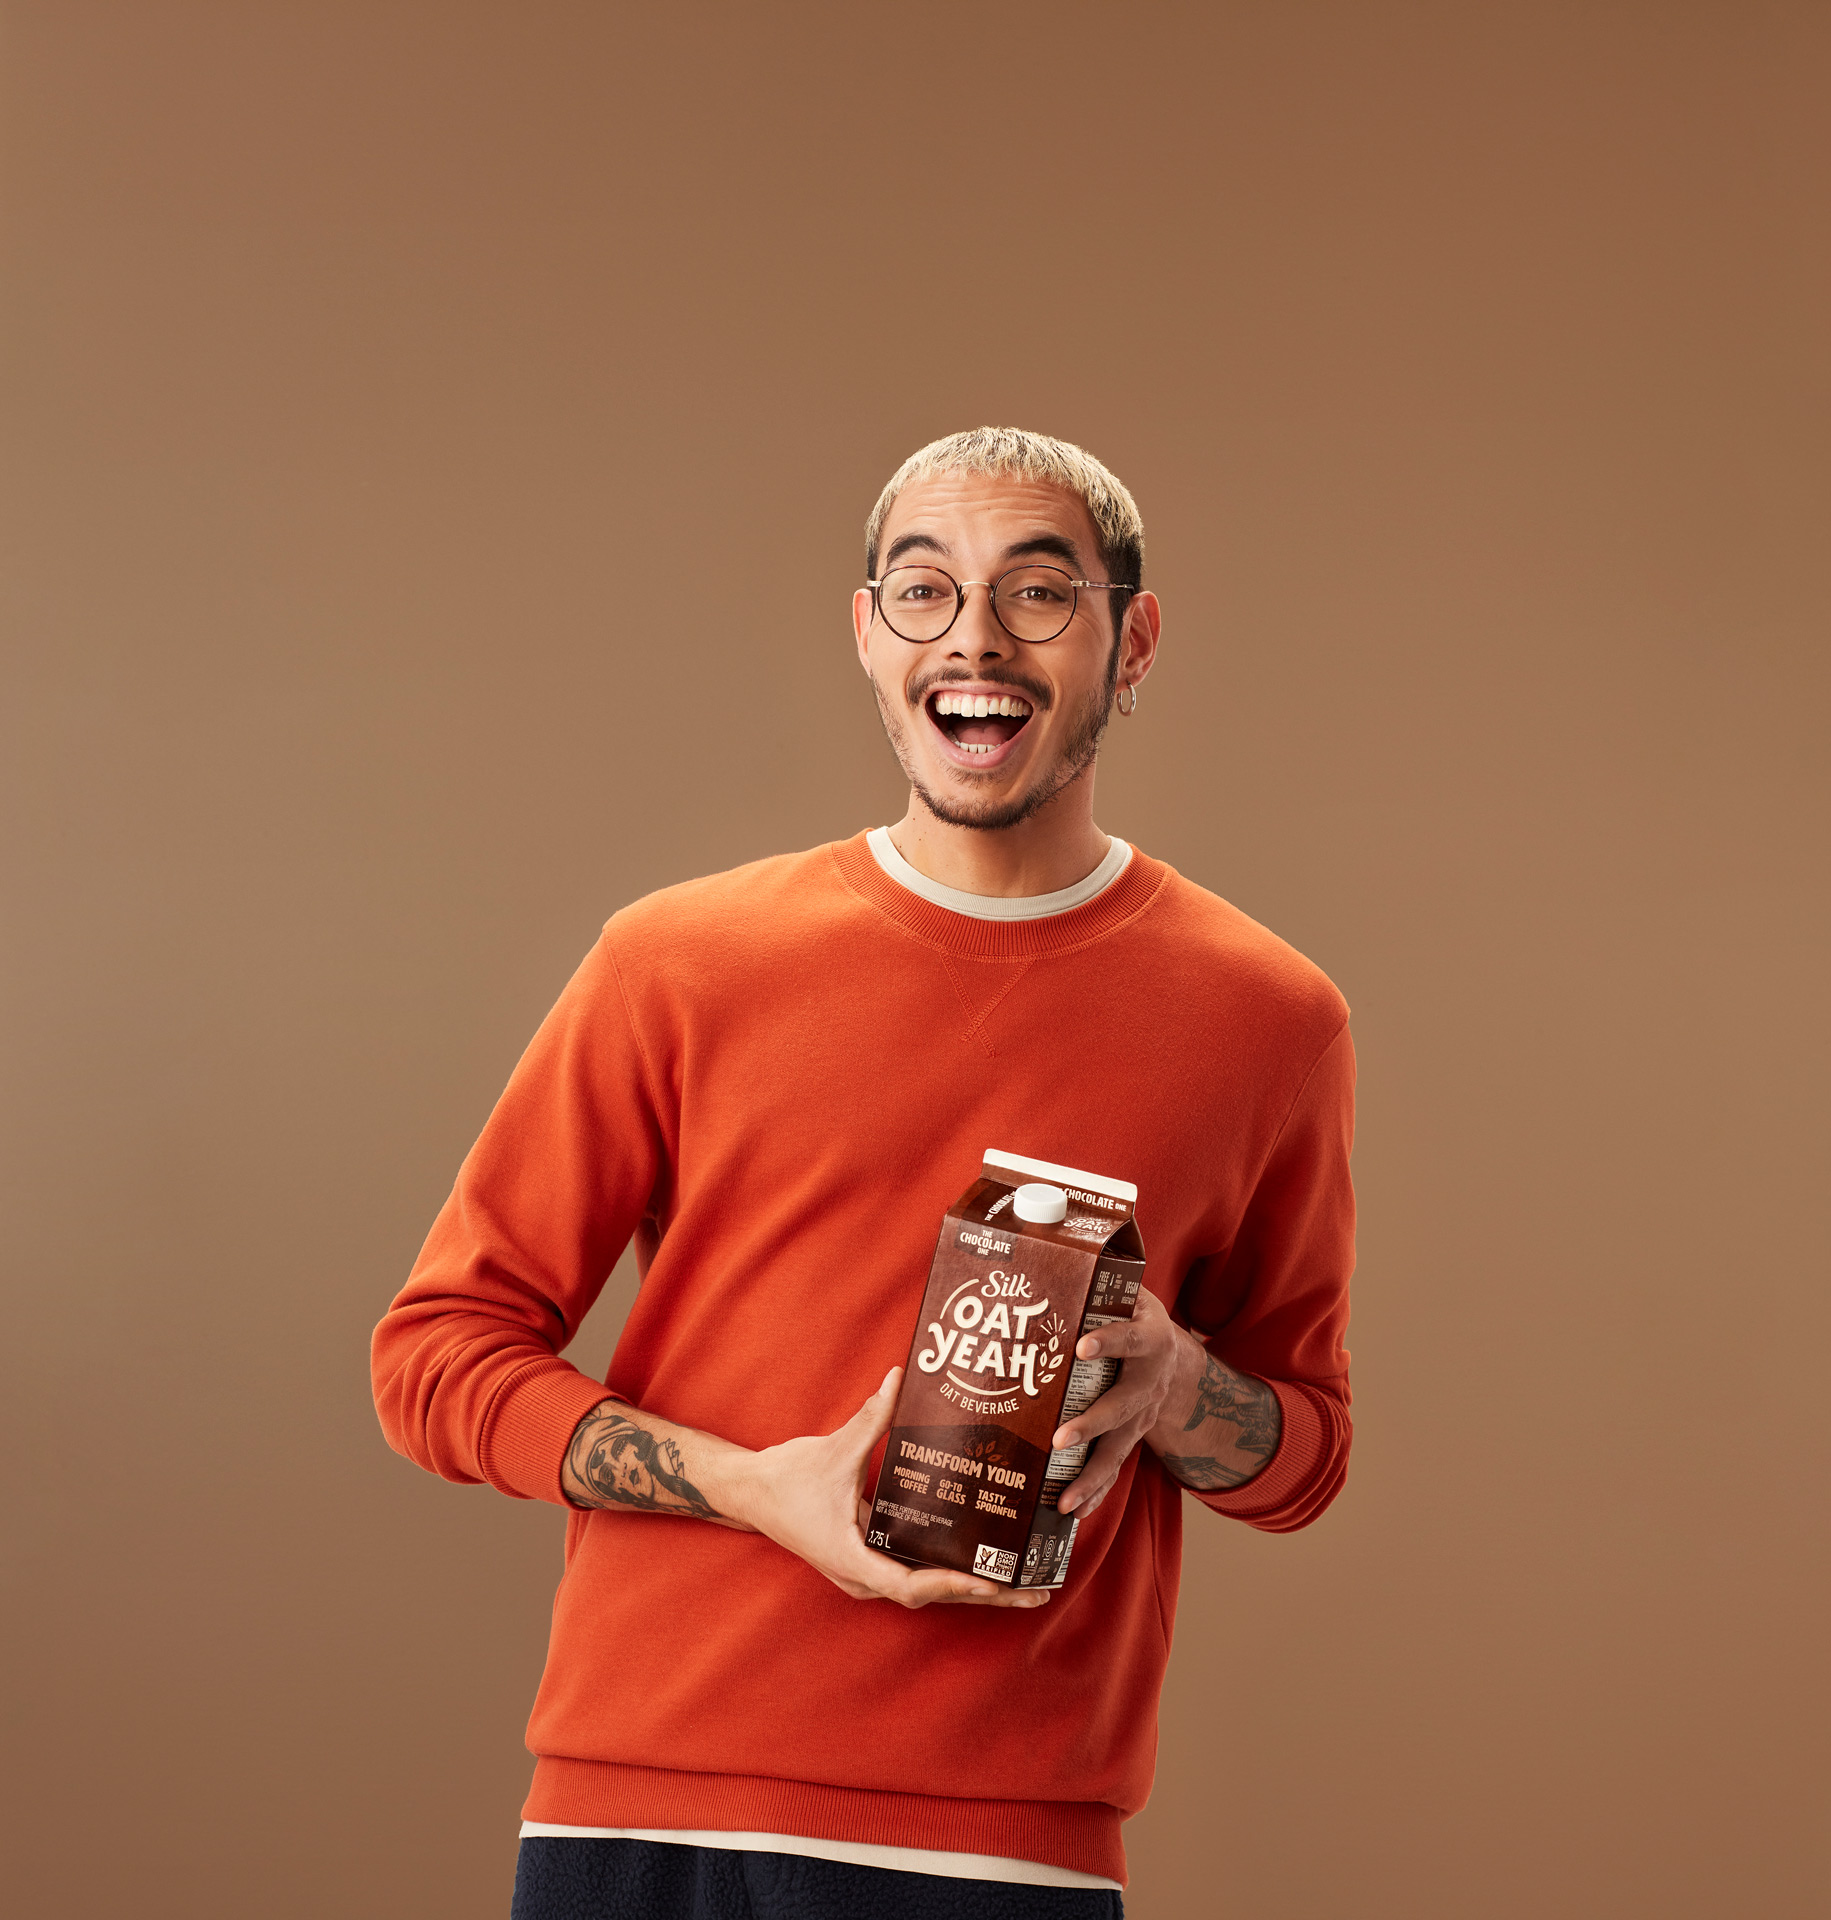 man smiling blonde hair glasses orange sweater holding carton of chocolate oat milk by Simon Duhamel for Oat Yeah Silk and Carl agency